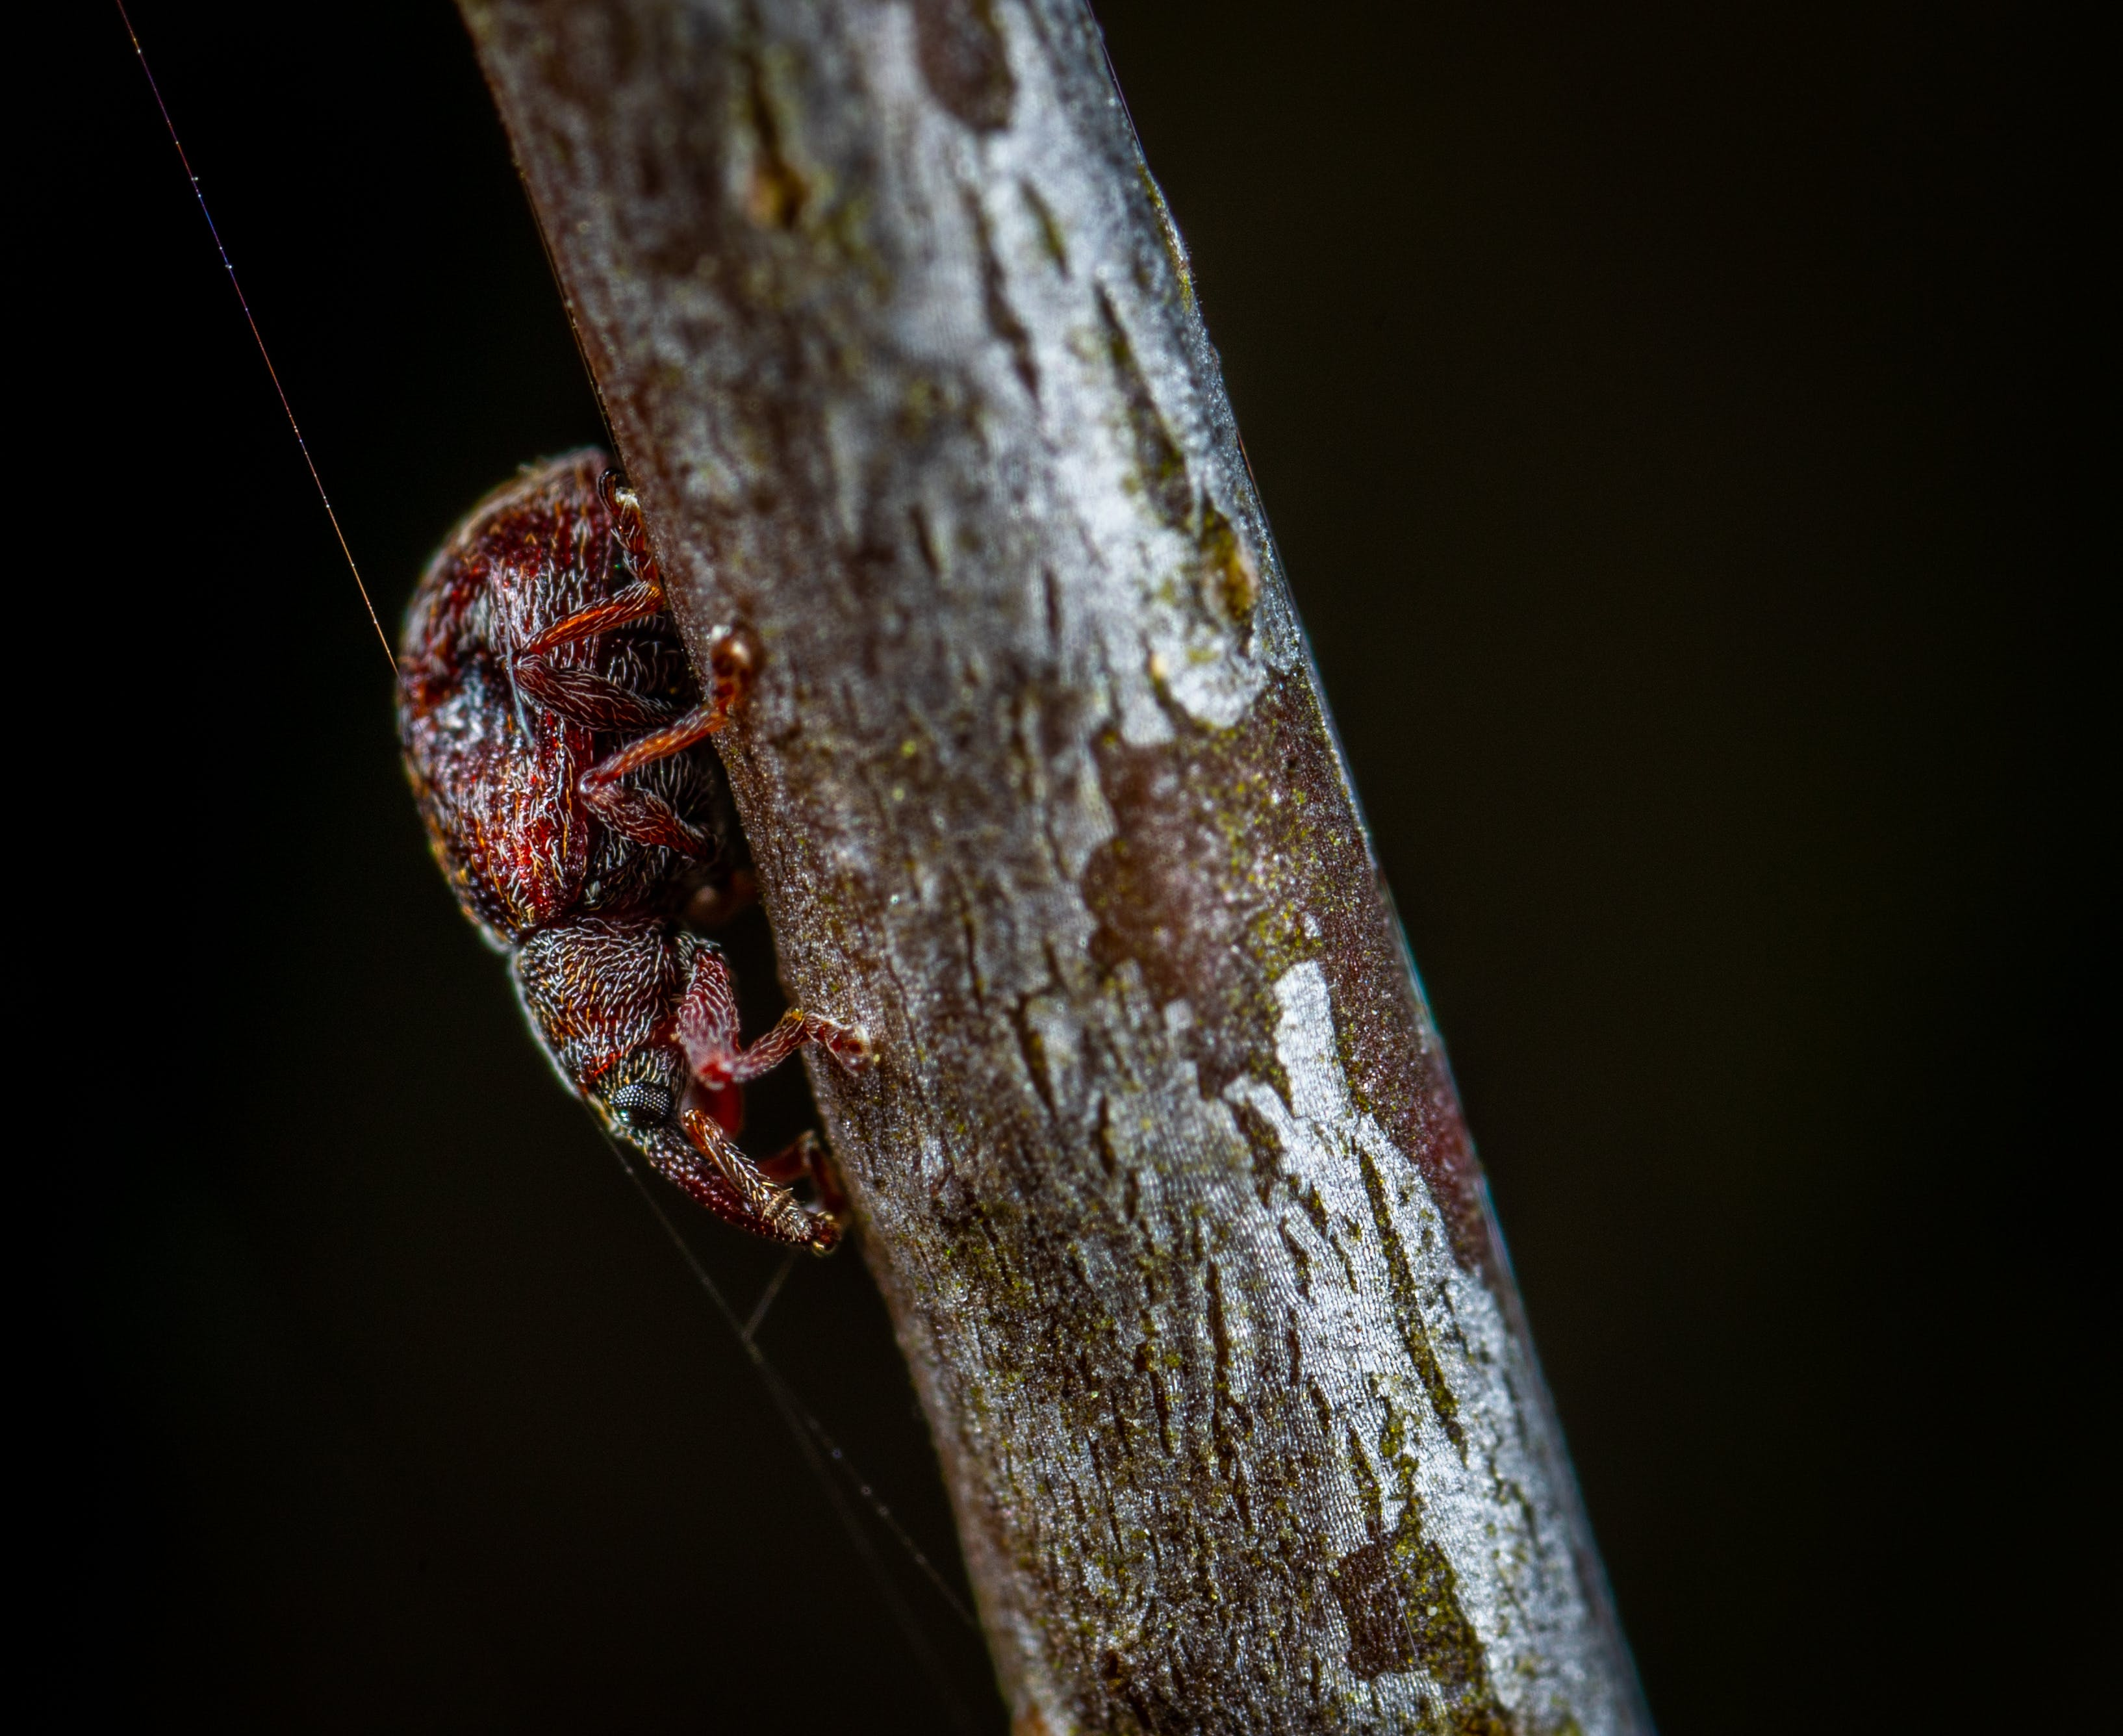 Macro Photo of Red Tree Hopper on Brown Wooden Stem